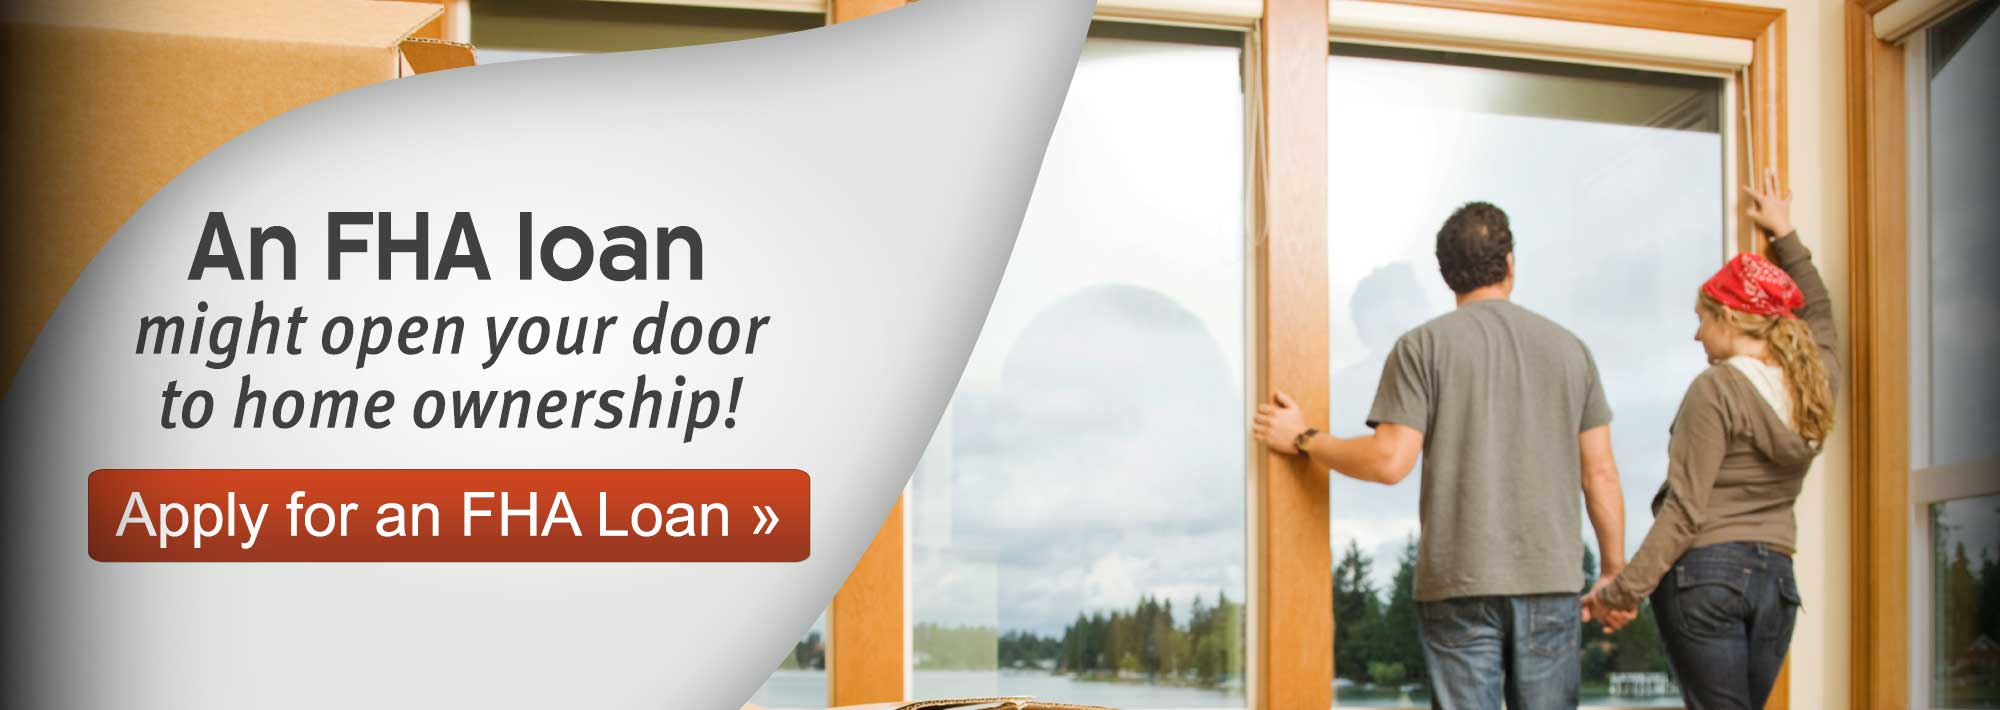 A FHA loan might open your door to home ownership! Apply for an FHA loan.